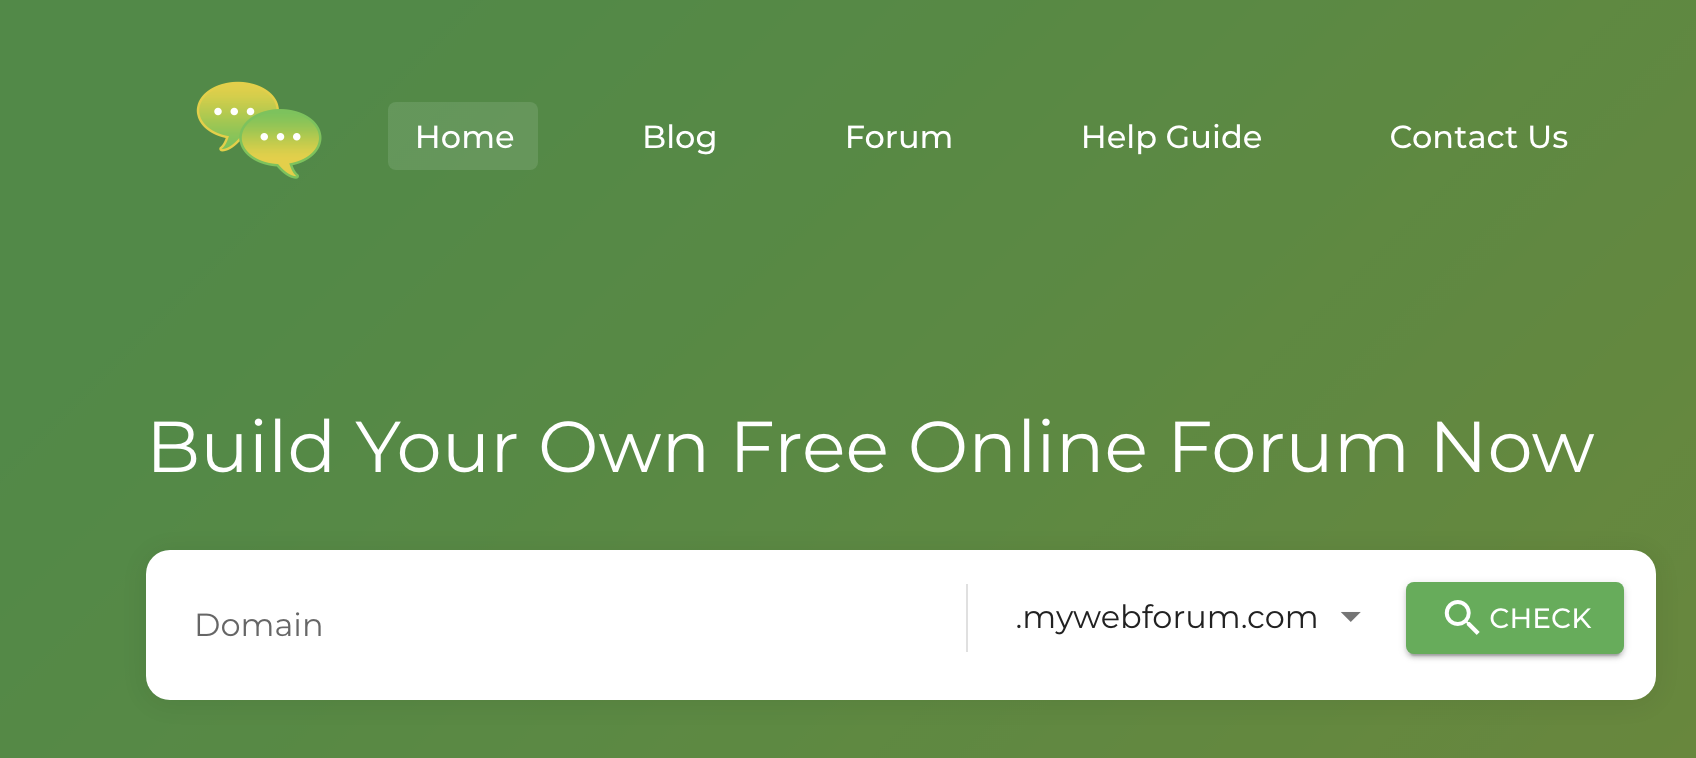 Mywebforum.com